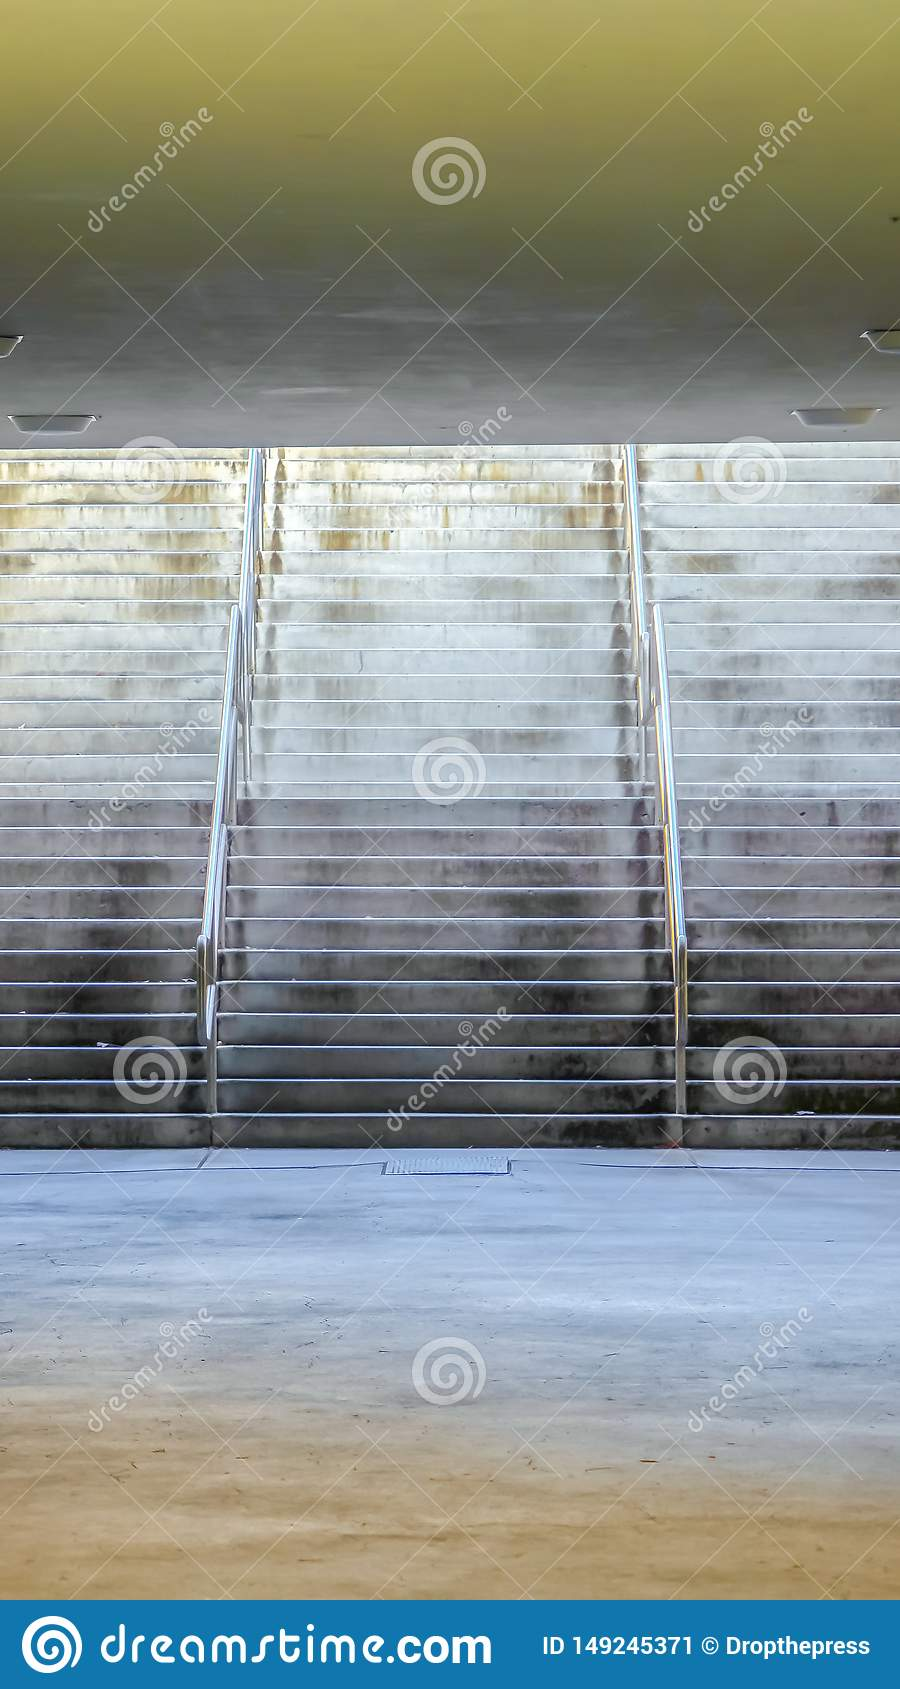 Vertical frame Wide flight of stairs at a passageway under a building with brick wall